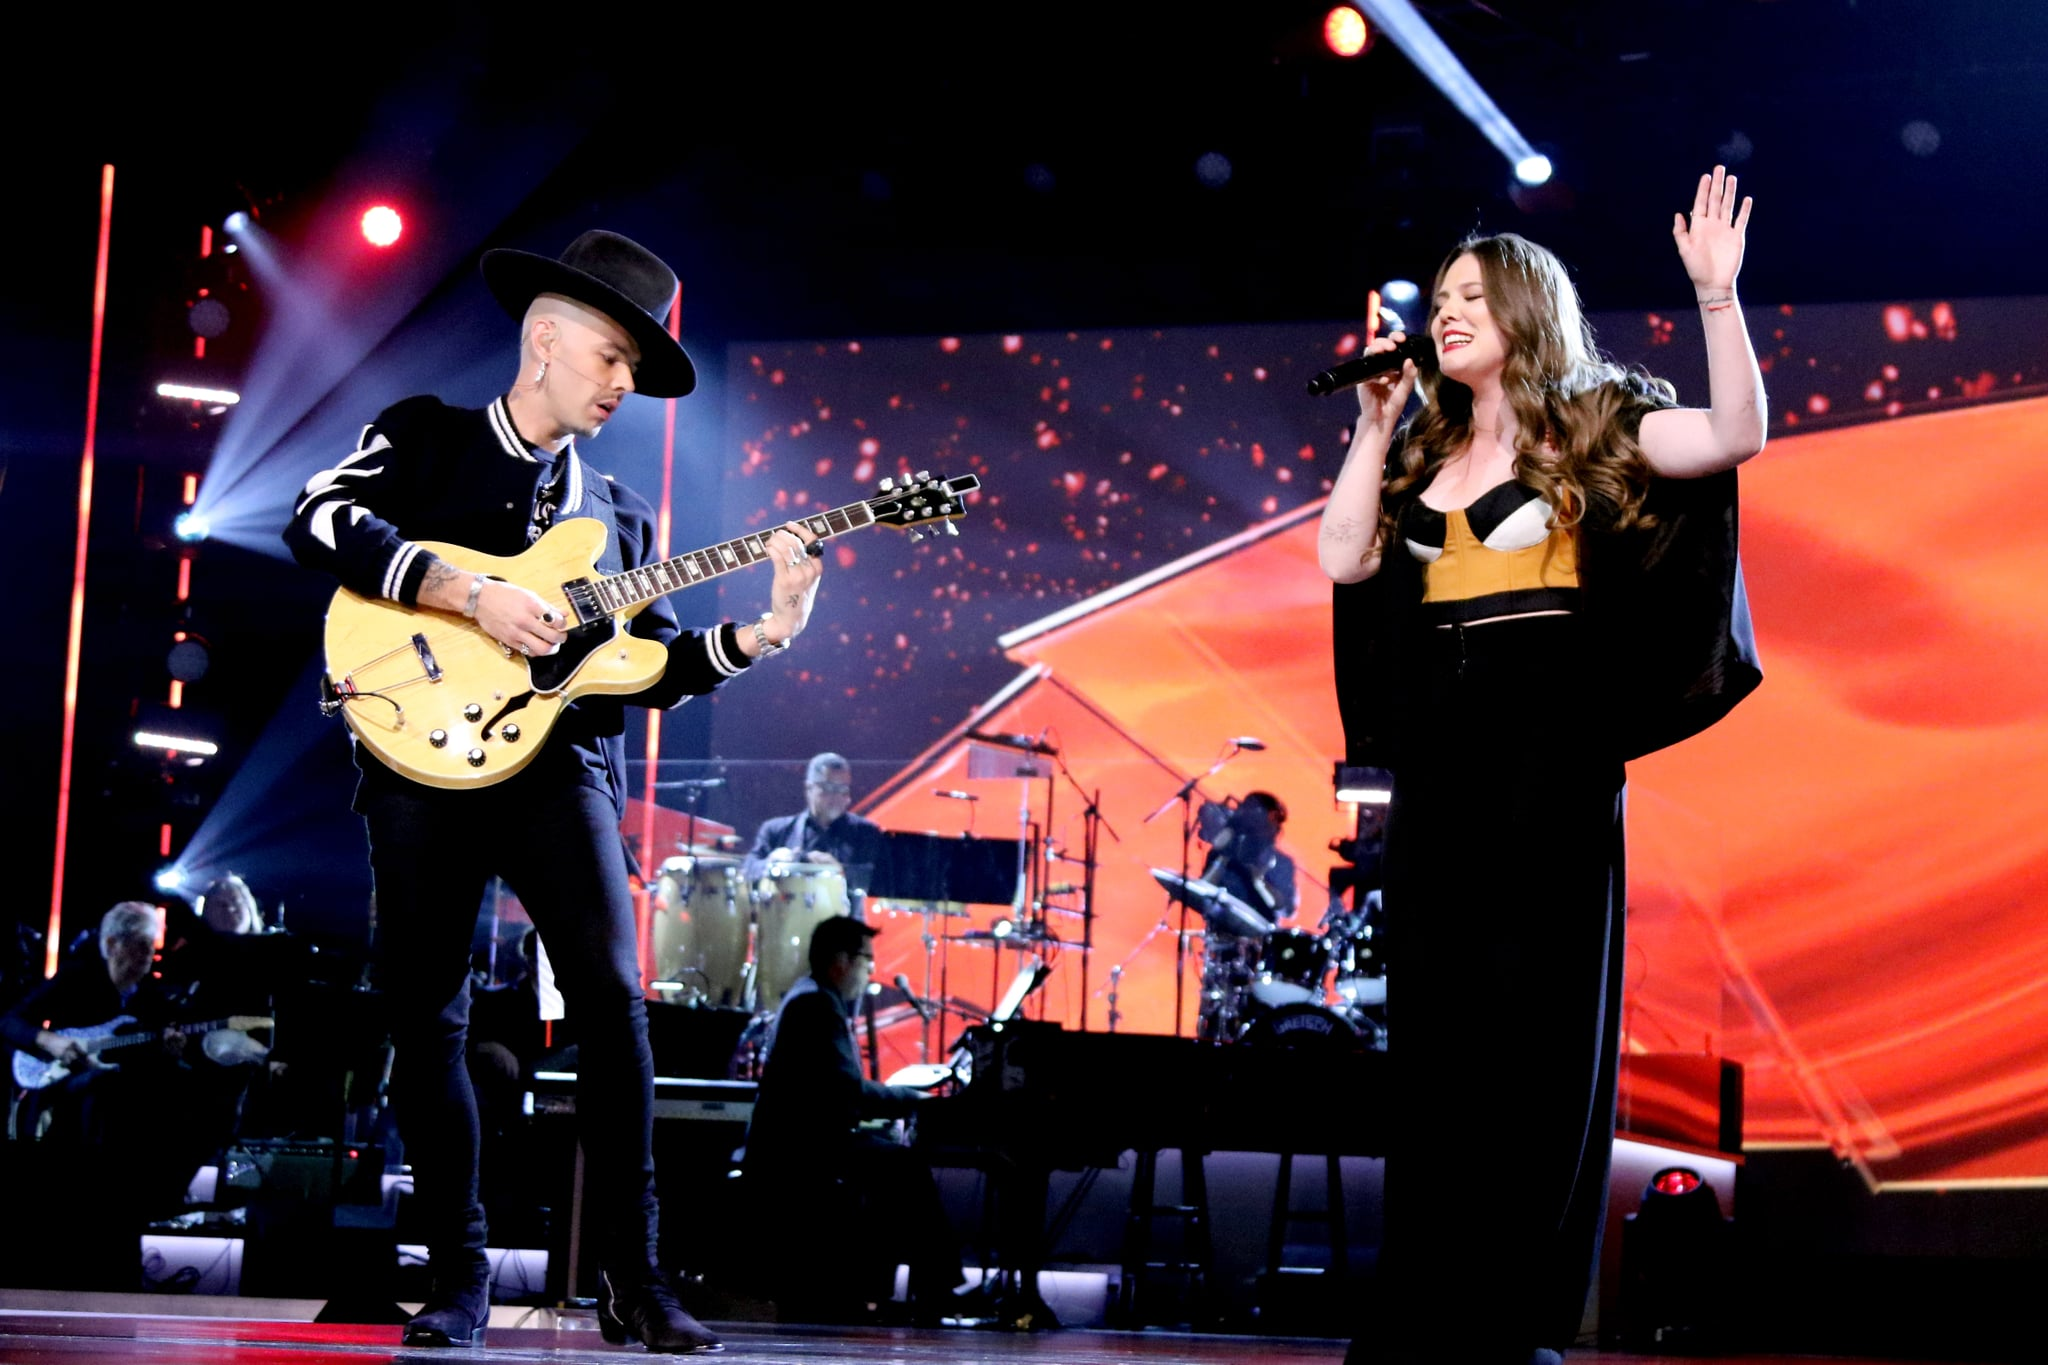 LAS VEGAS, NV - NOVEMBER 15:  Jesse Huerta (L) and Joy Huerta of Jesse y Joy perform onstage during the 2017 Person of the Year Gala honoring Alejandro Sanz at the Mandalay Bay Convention Center on November 15, 2017 in Las Vegas, Nevada.  (Photo by John Parra/Getty Images for LARAS)